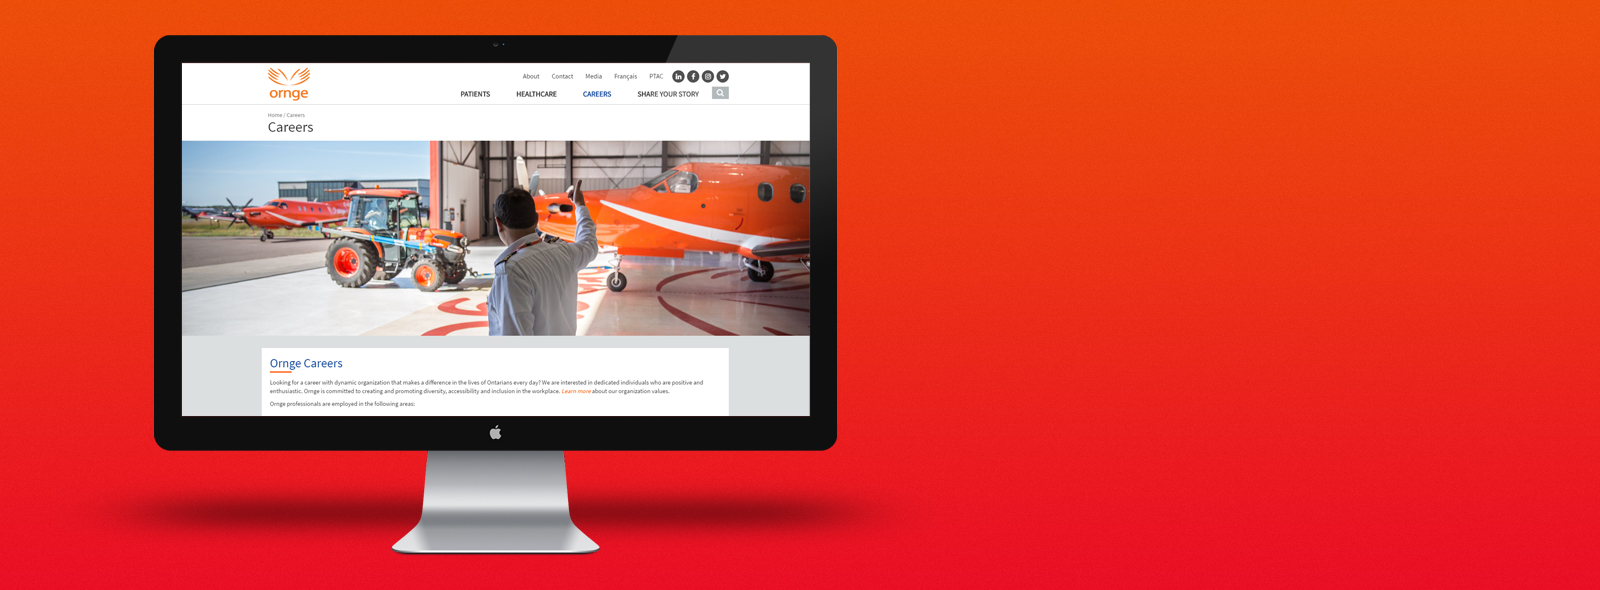 Mac Computer with Ornge Careers Page